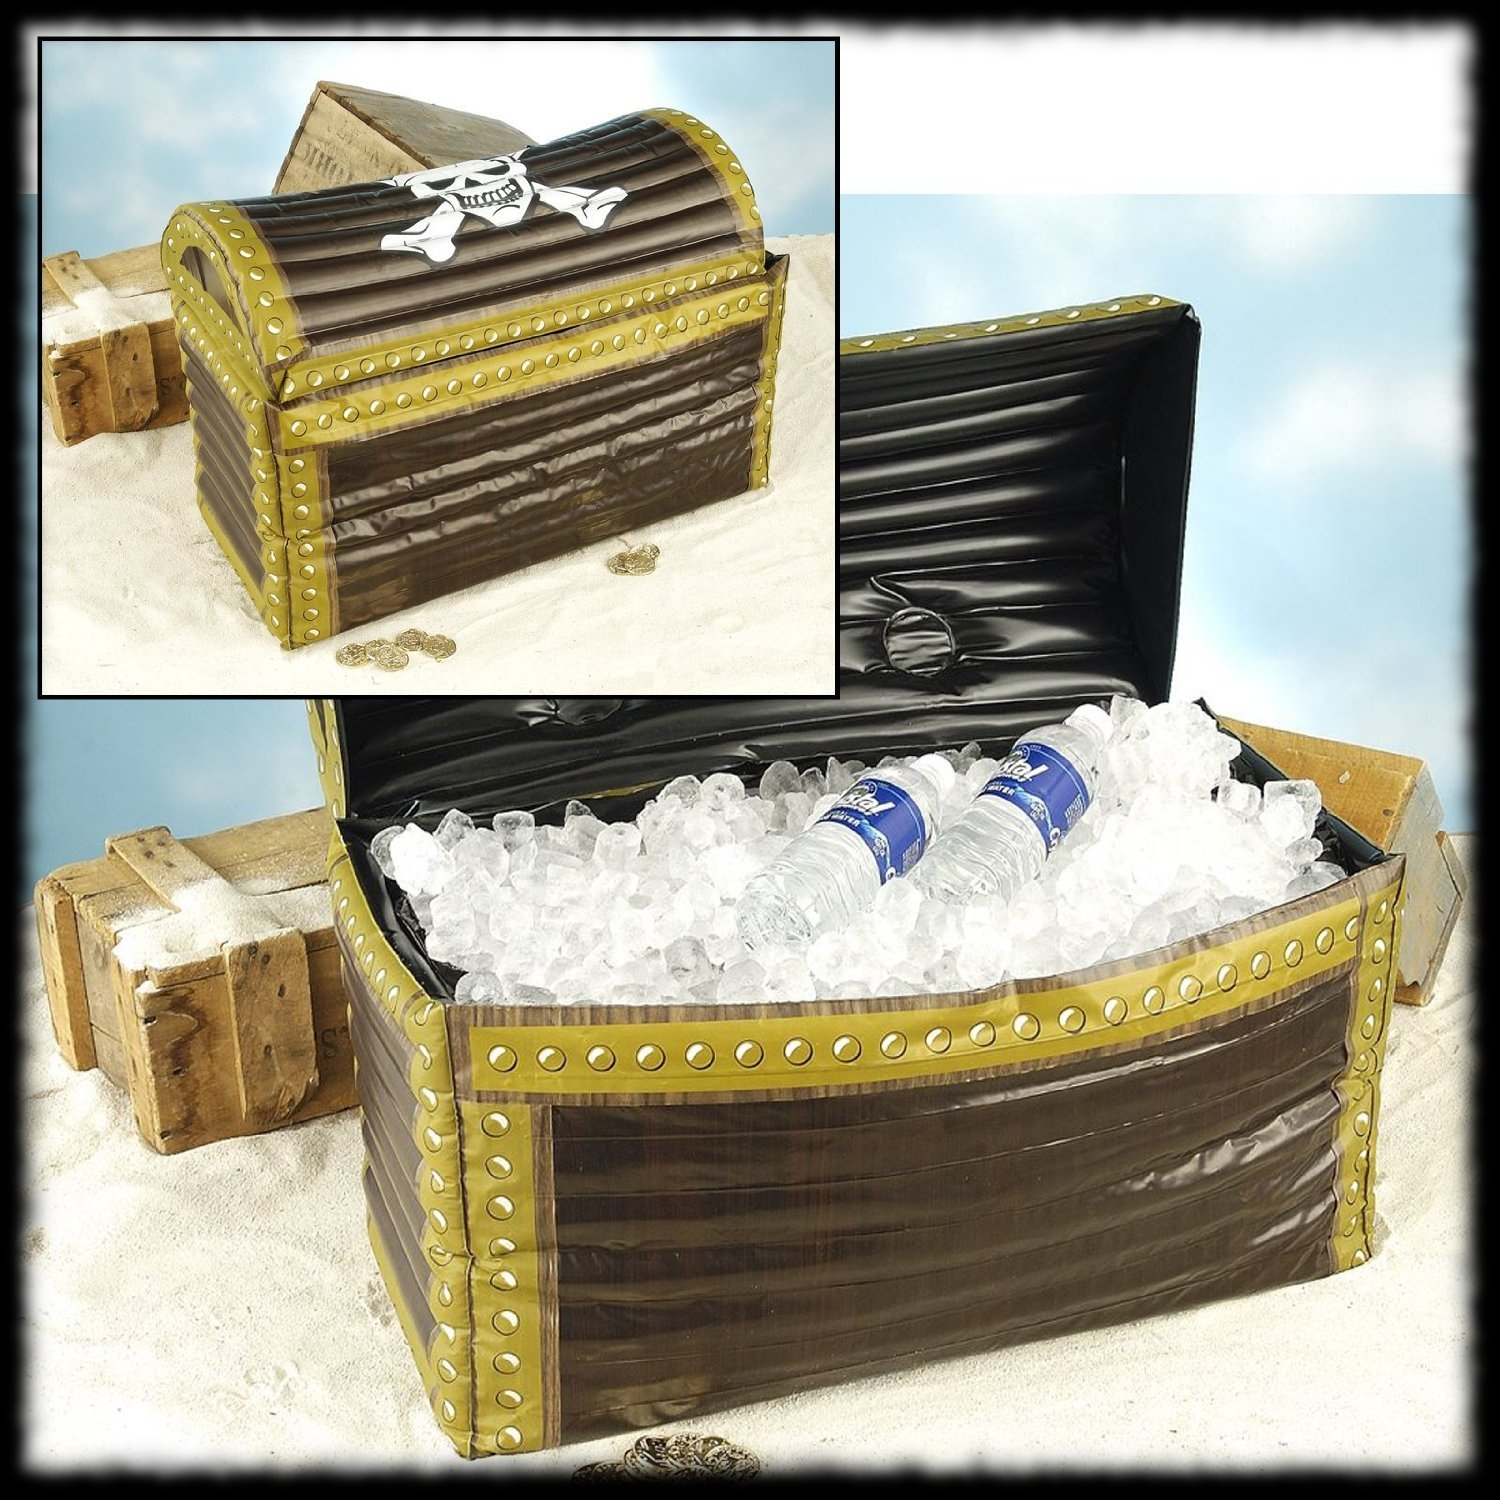 Inflatable Pirate Chest Cooler Party Ideas for Halloween